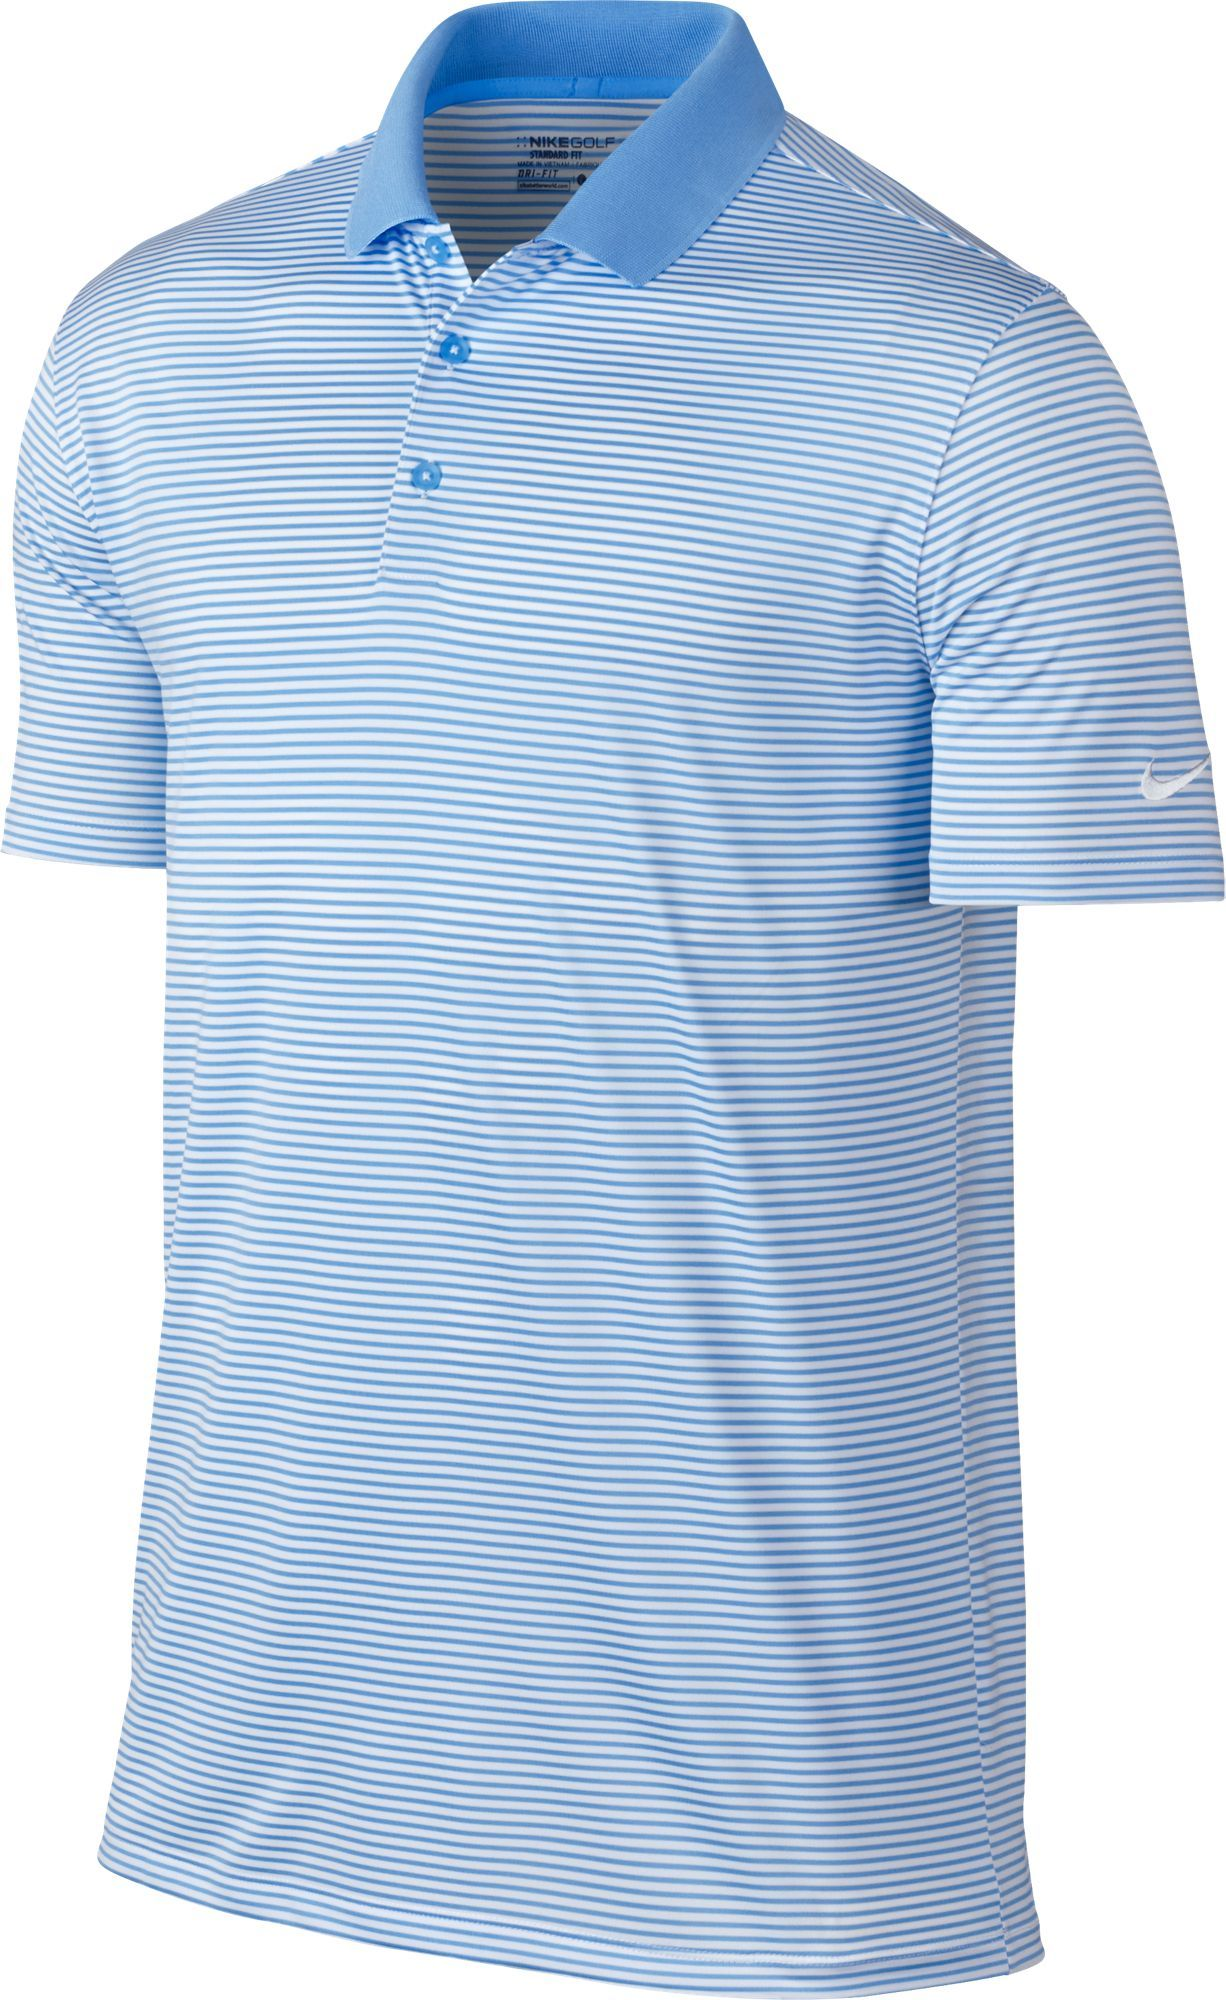 5a5694305d405 Nike Men's Dri-FIT Victory Mini Stripe Golf Polo | Products in 2019 ...